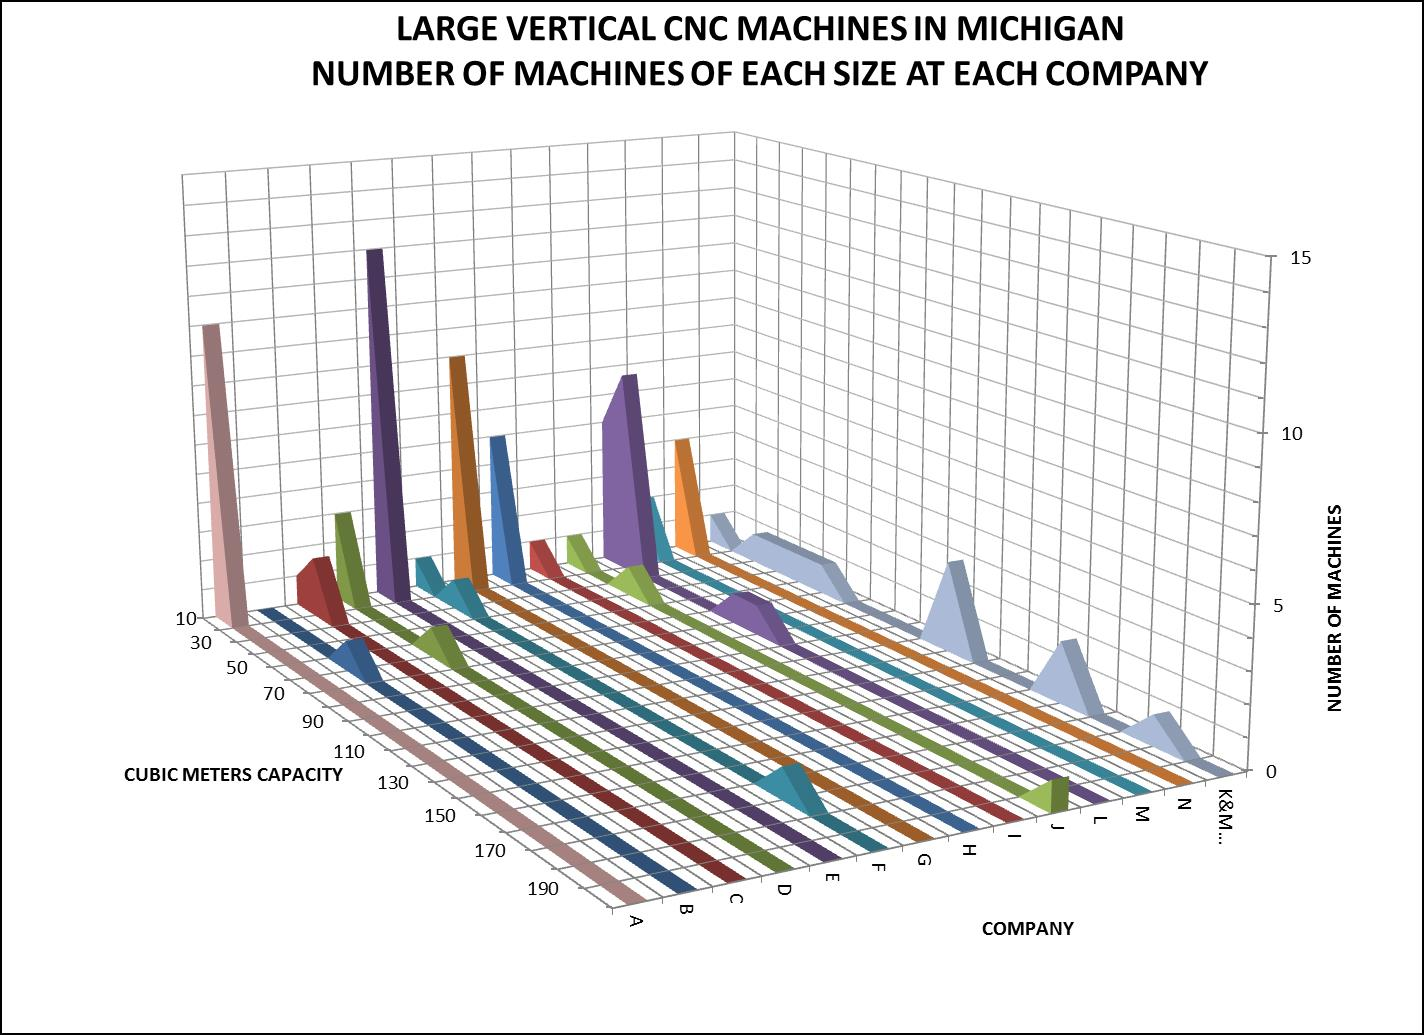 Michigan Large Vertical CNC Machines by Number of Machines at Each Company